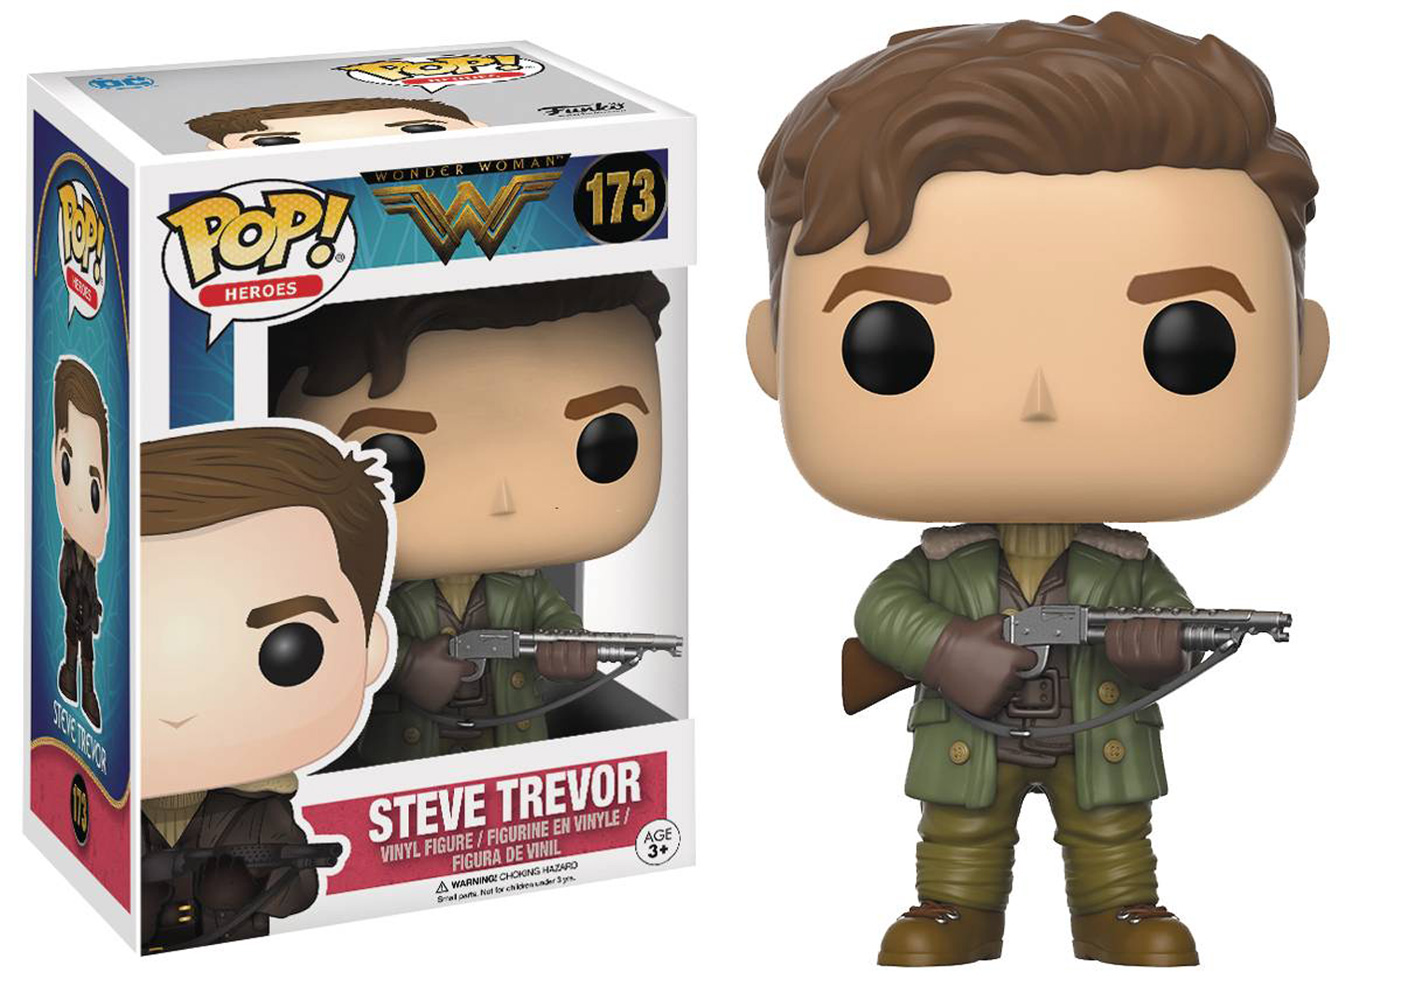 Pop! Wonder Woman Movie Vinyl Figure: Steve Trevor  - Funko